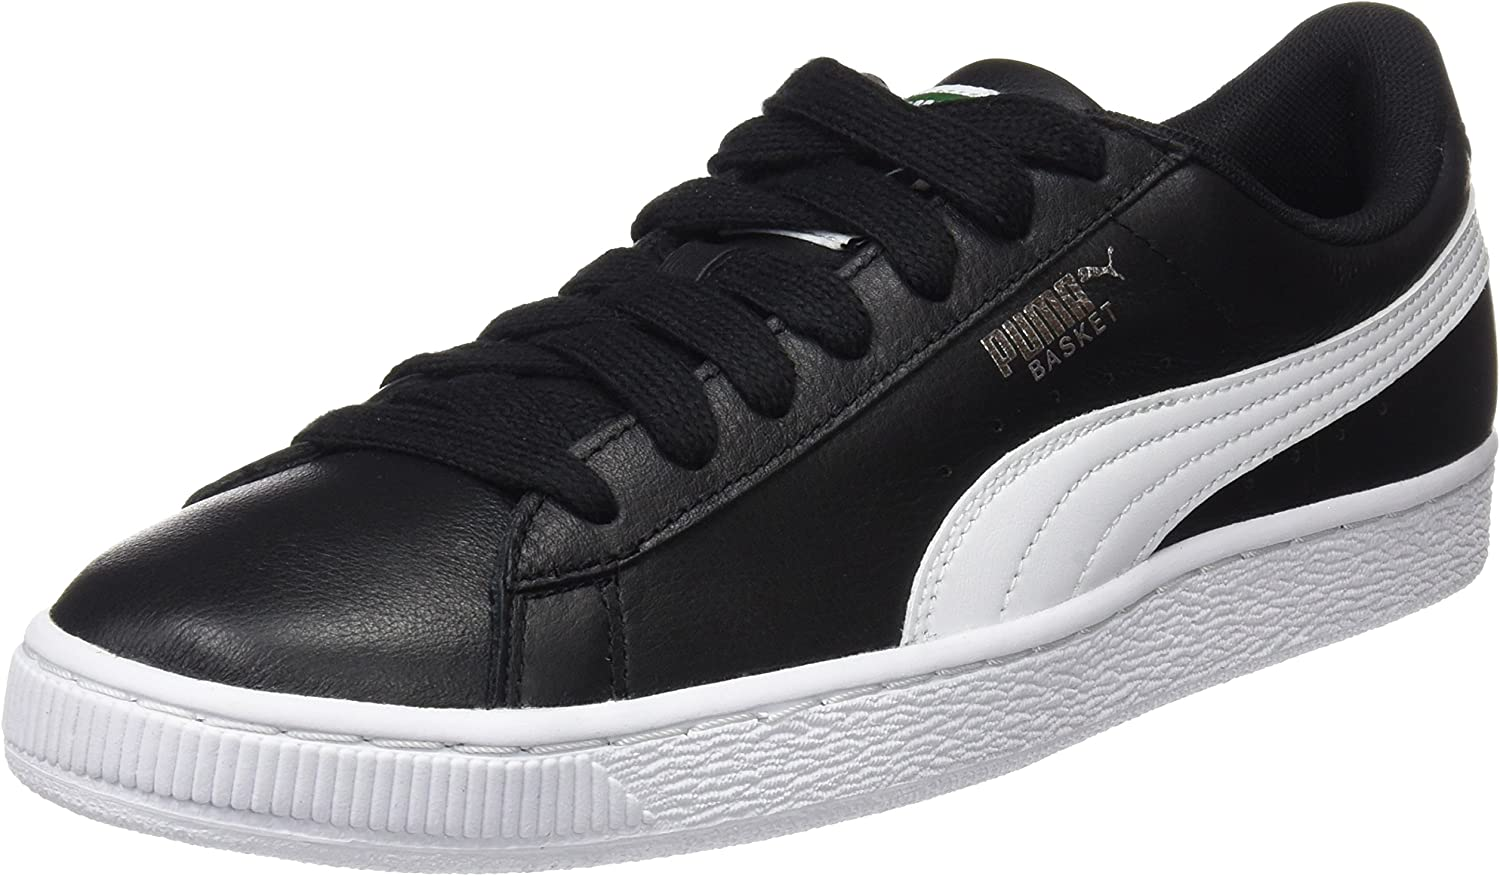 Puma Unisex Adults' Heritage Basket Classic Low-Top Sneakers